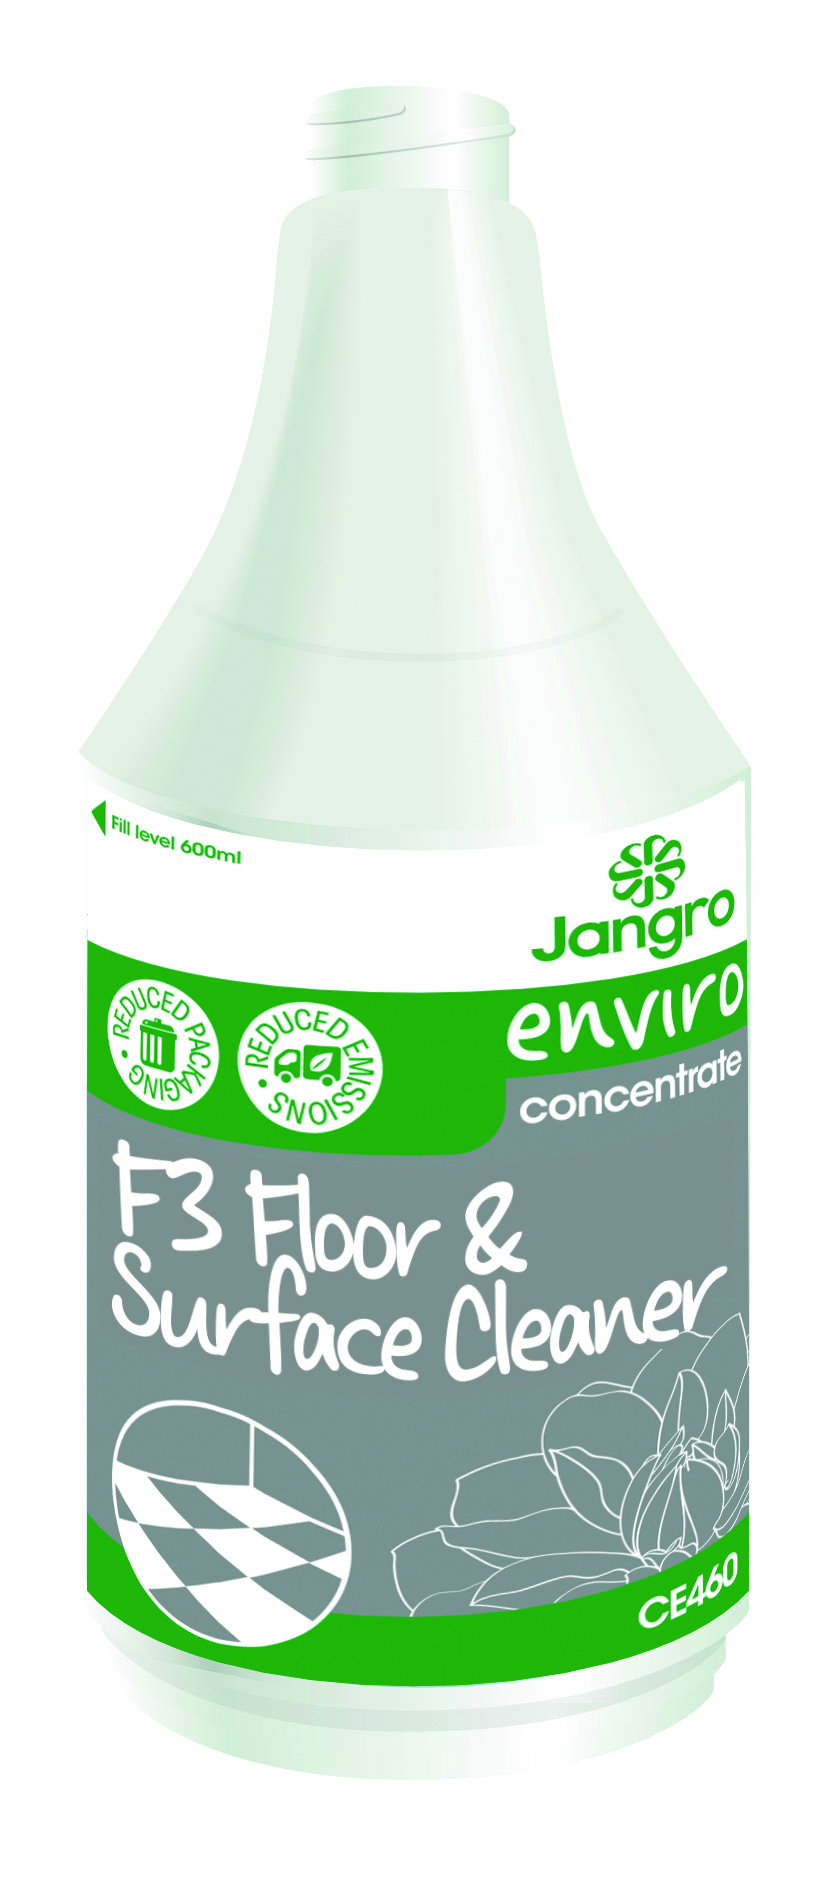 Spray Bottle Enviro F3 Floor Cleaner